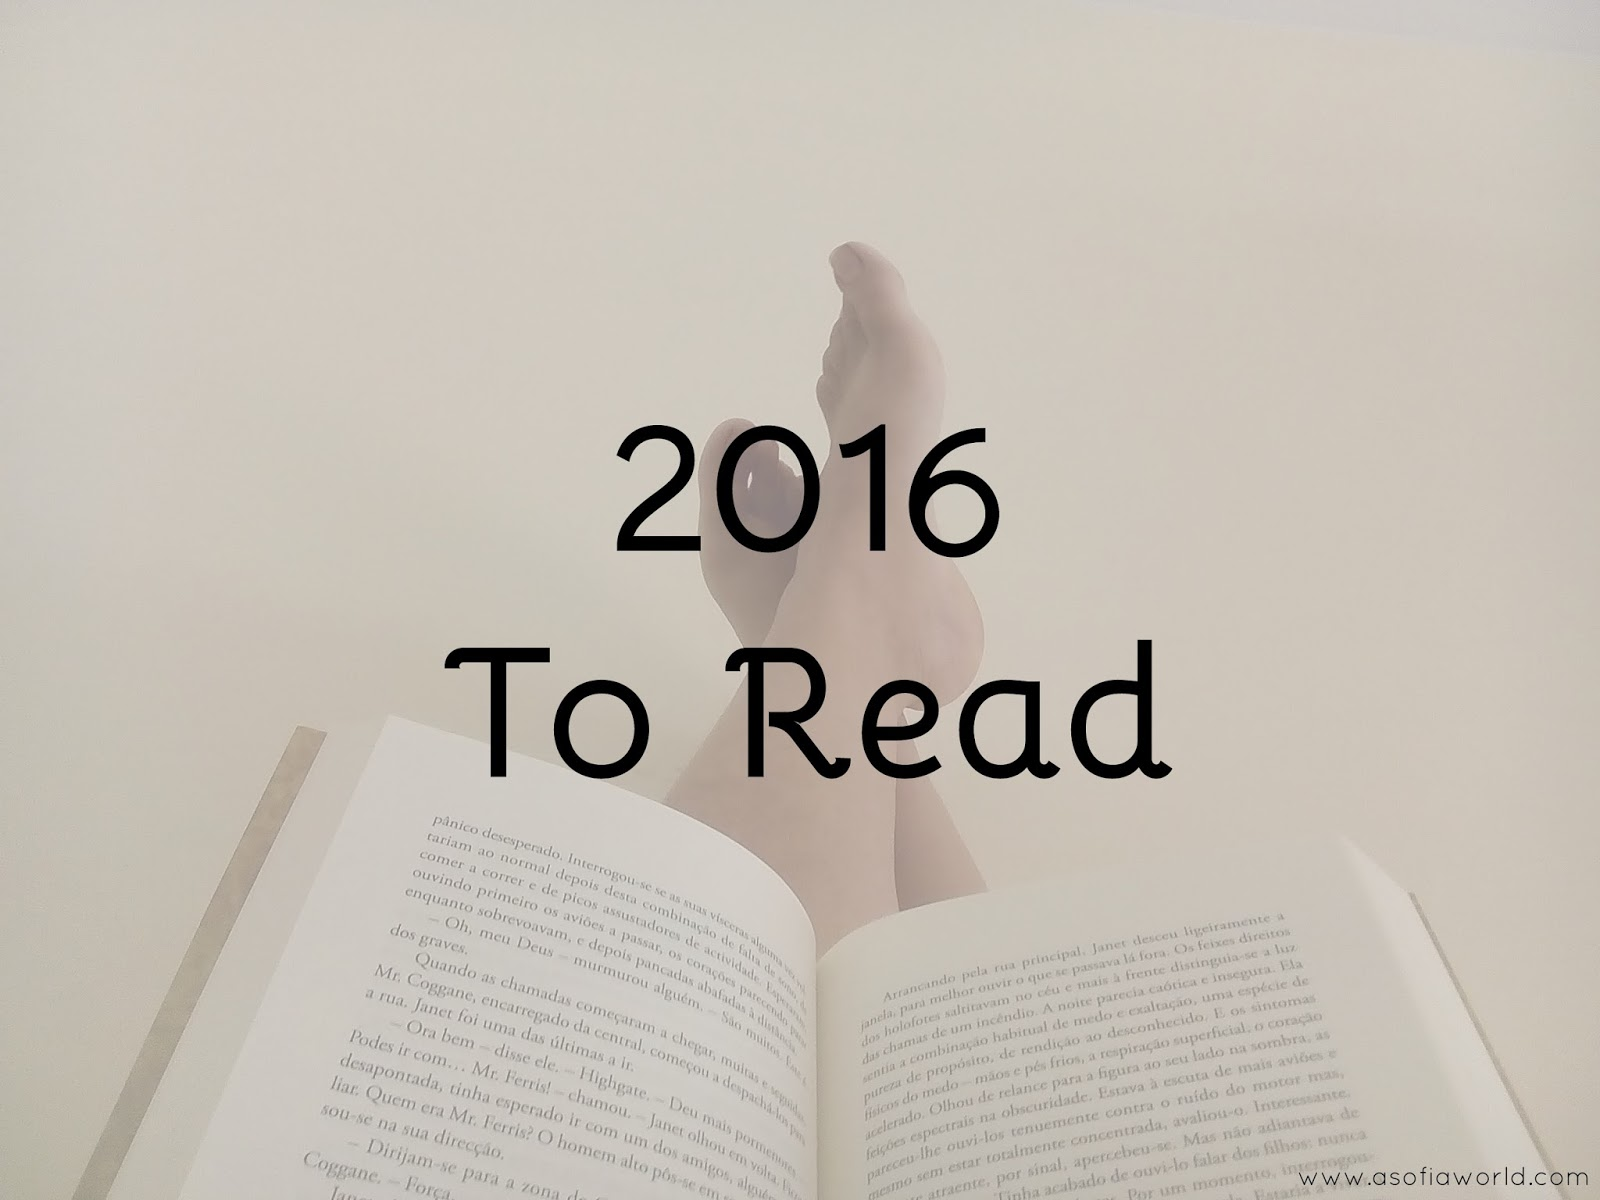 2016 to read list.